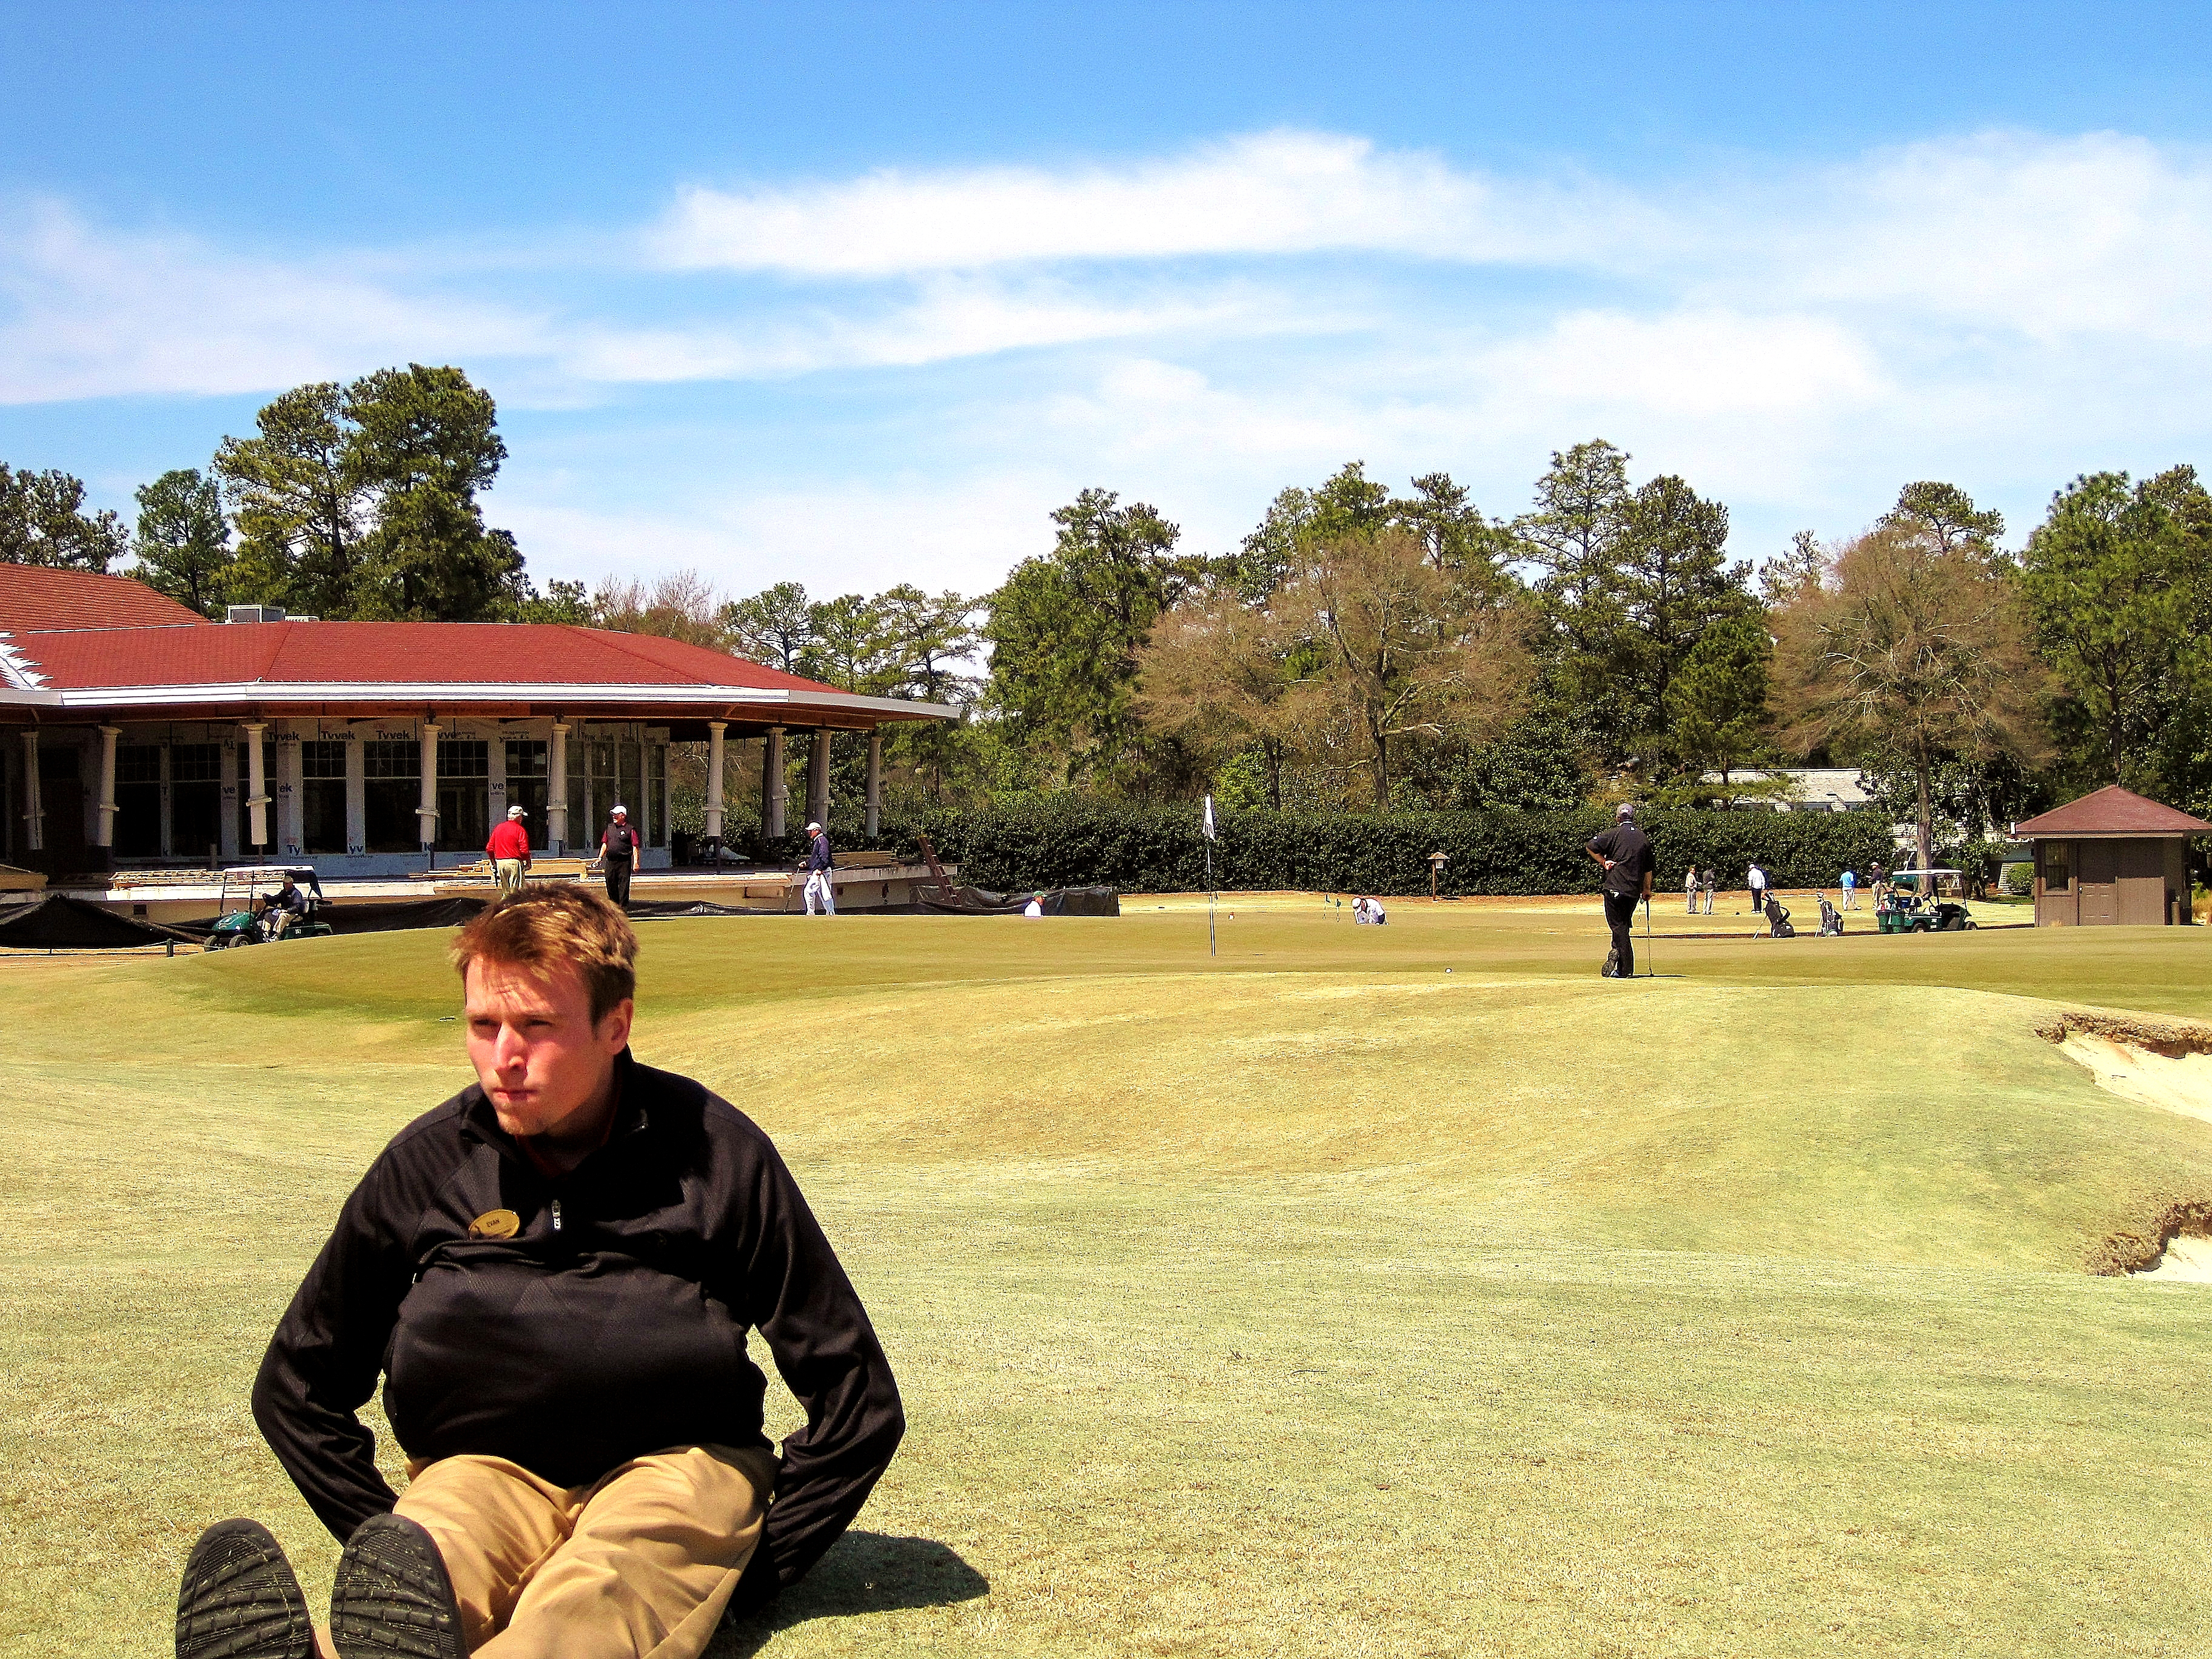 Evan sure wishes his back didn't hurt. He'd like to play Pinehurst No. 2. Especially the famed 18th hole.